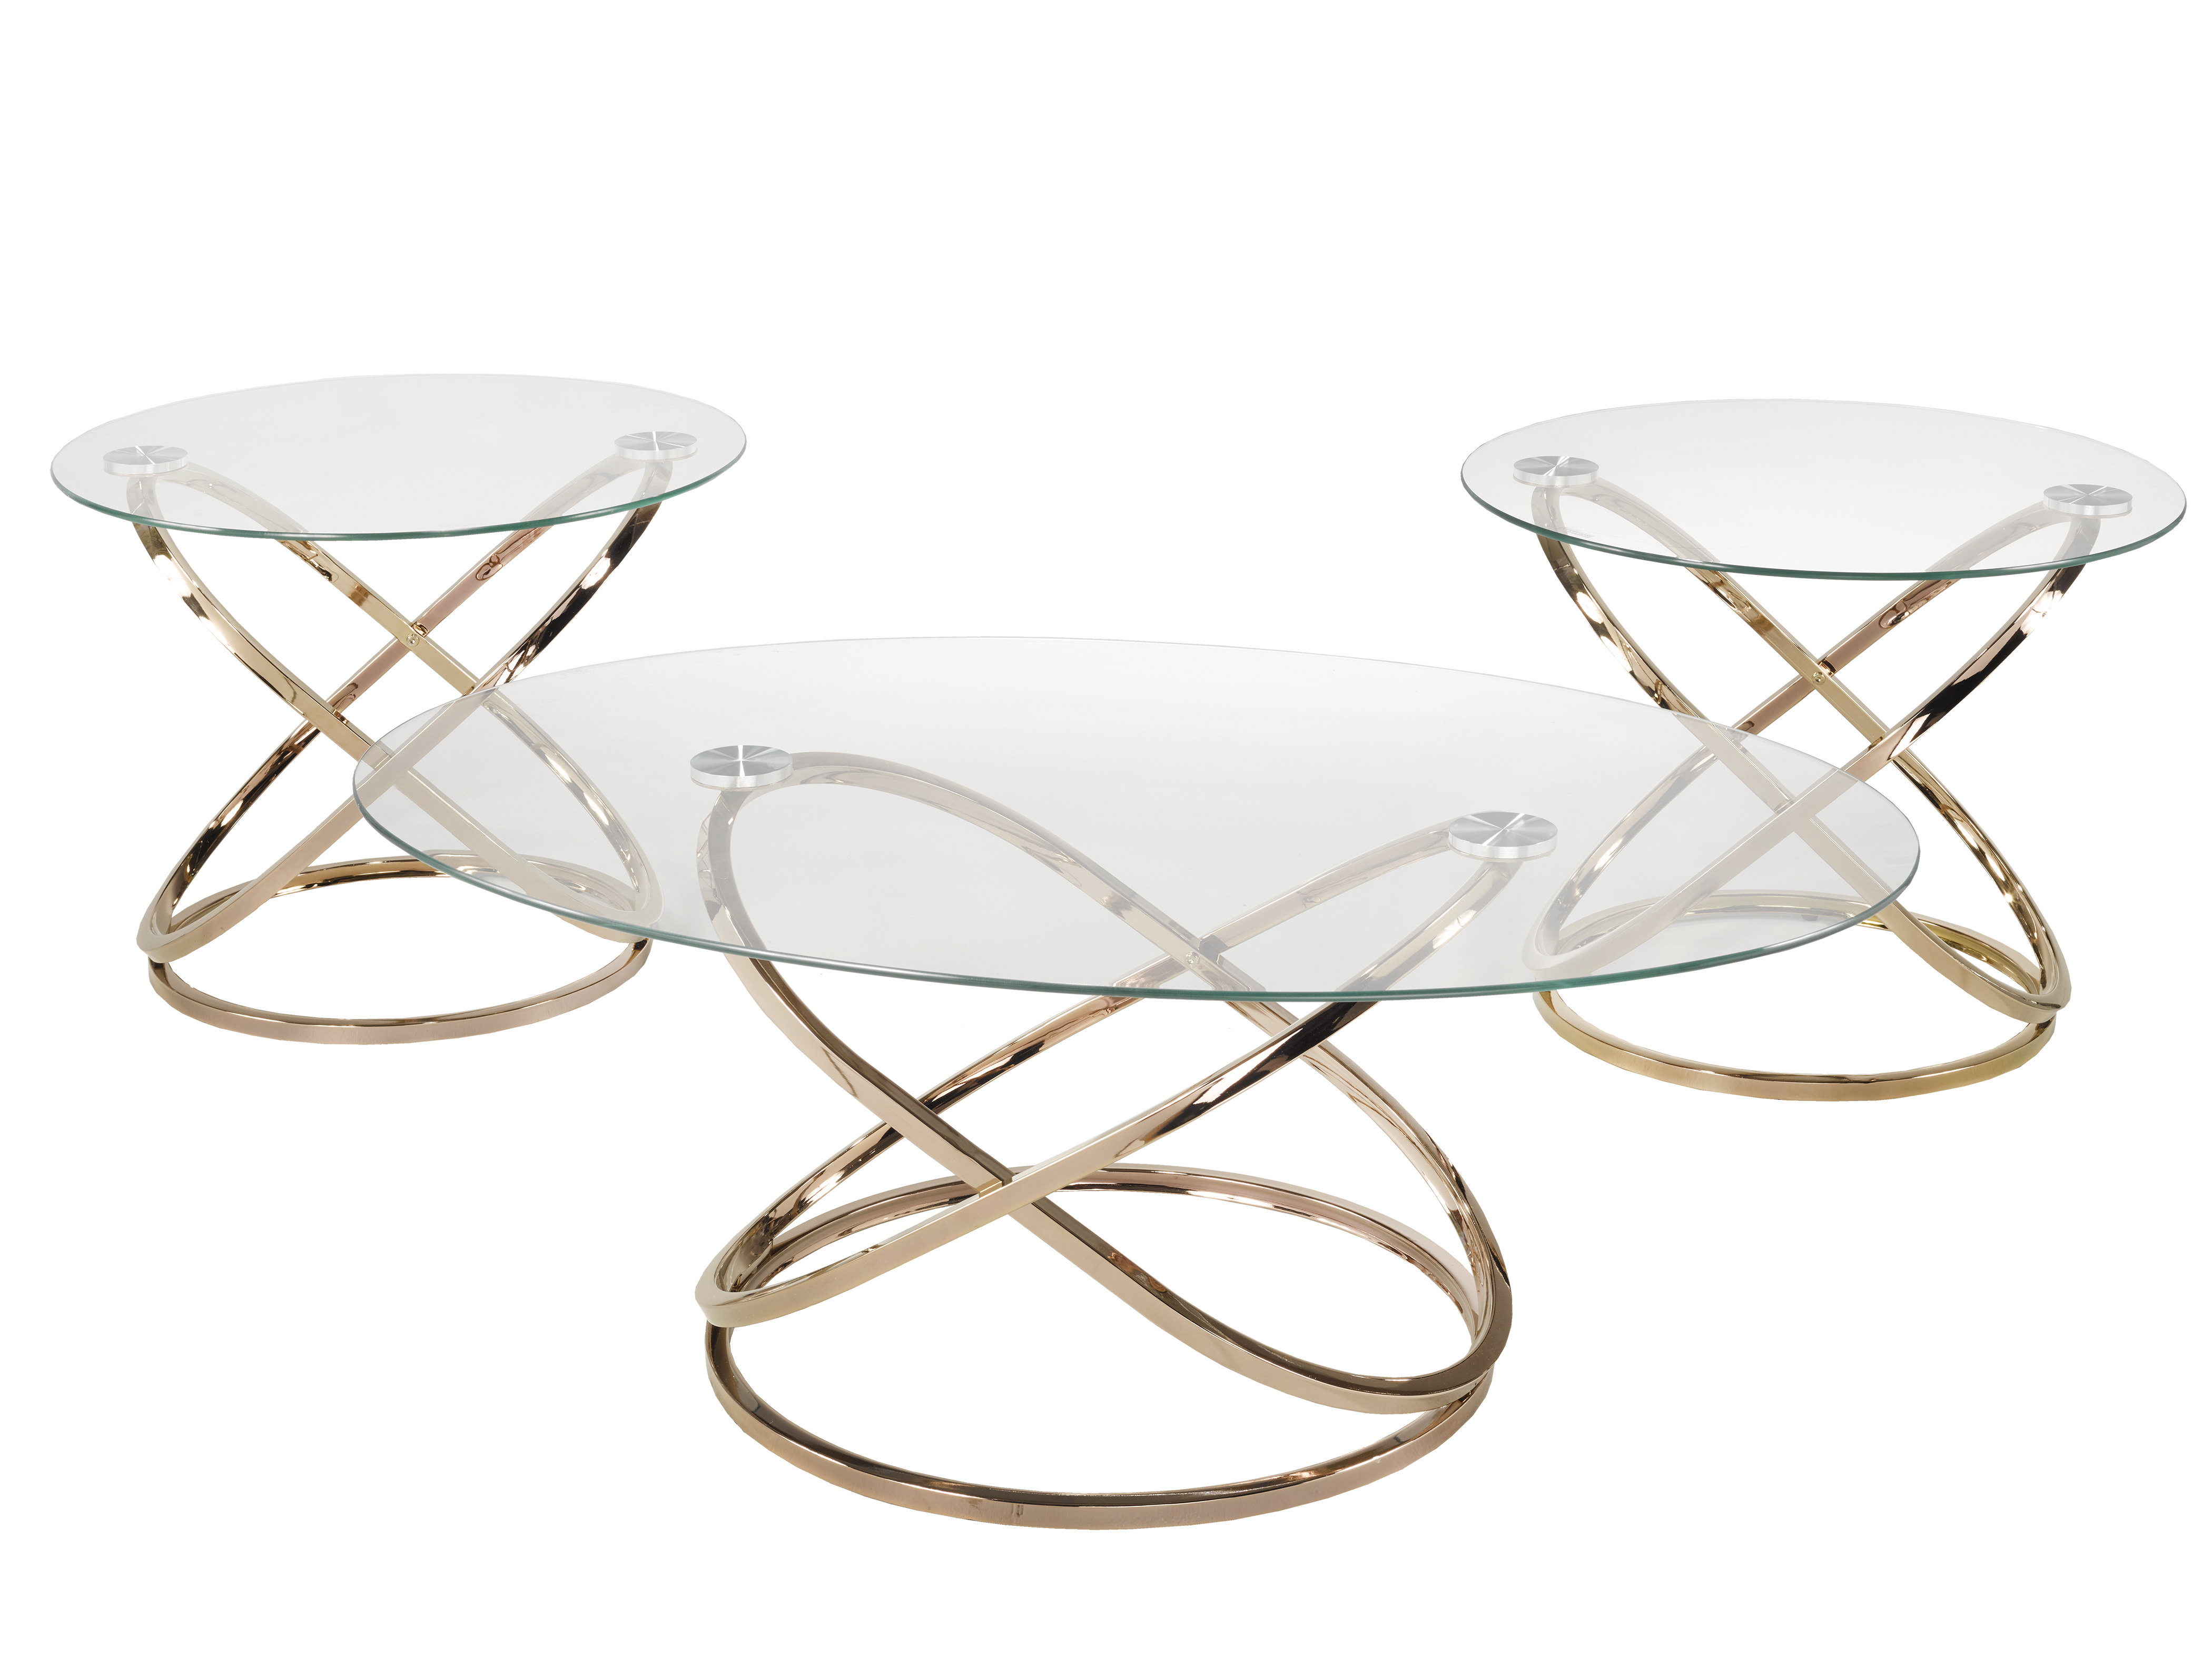 3 PIECE COFFEE TABLE SET - ROSE GOLD